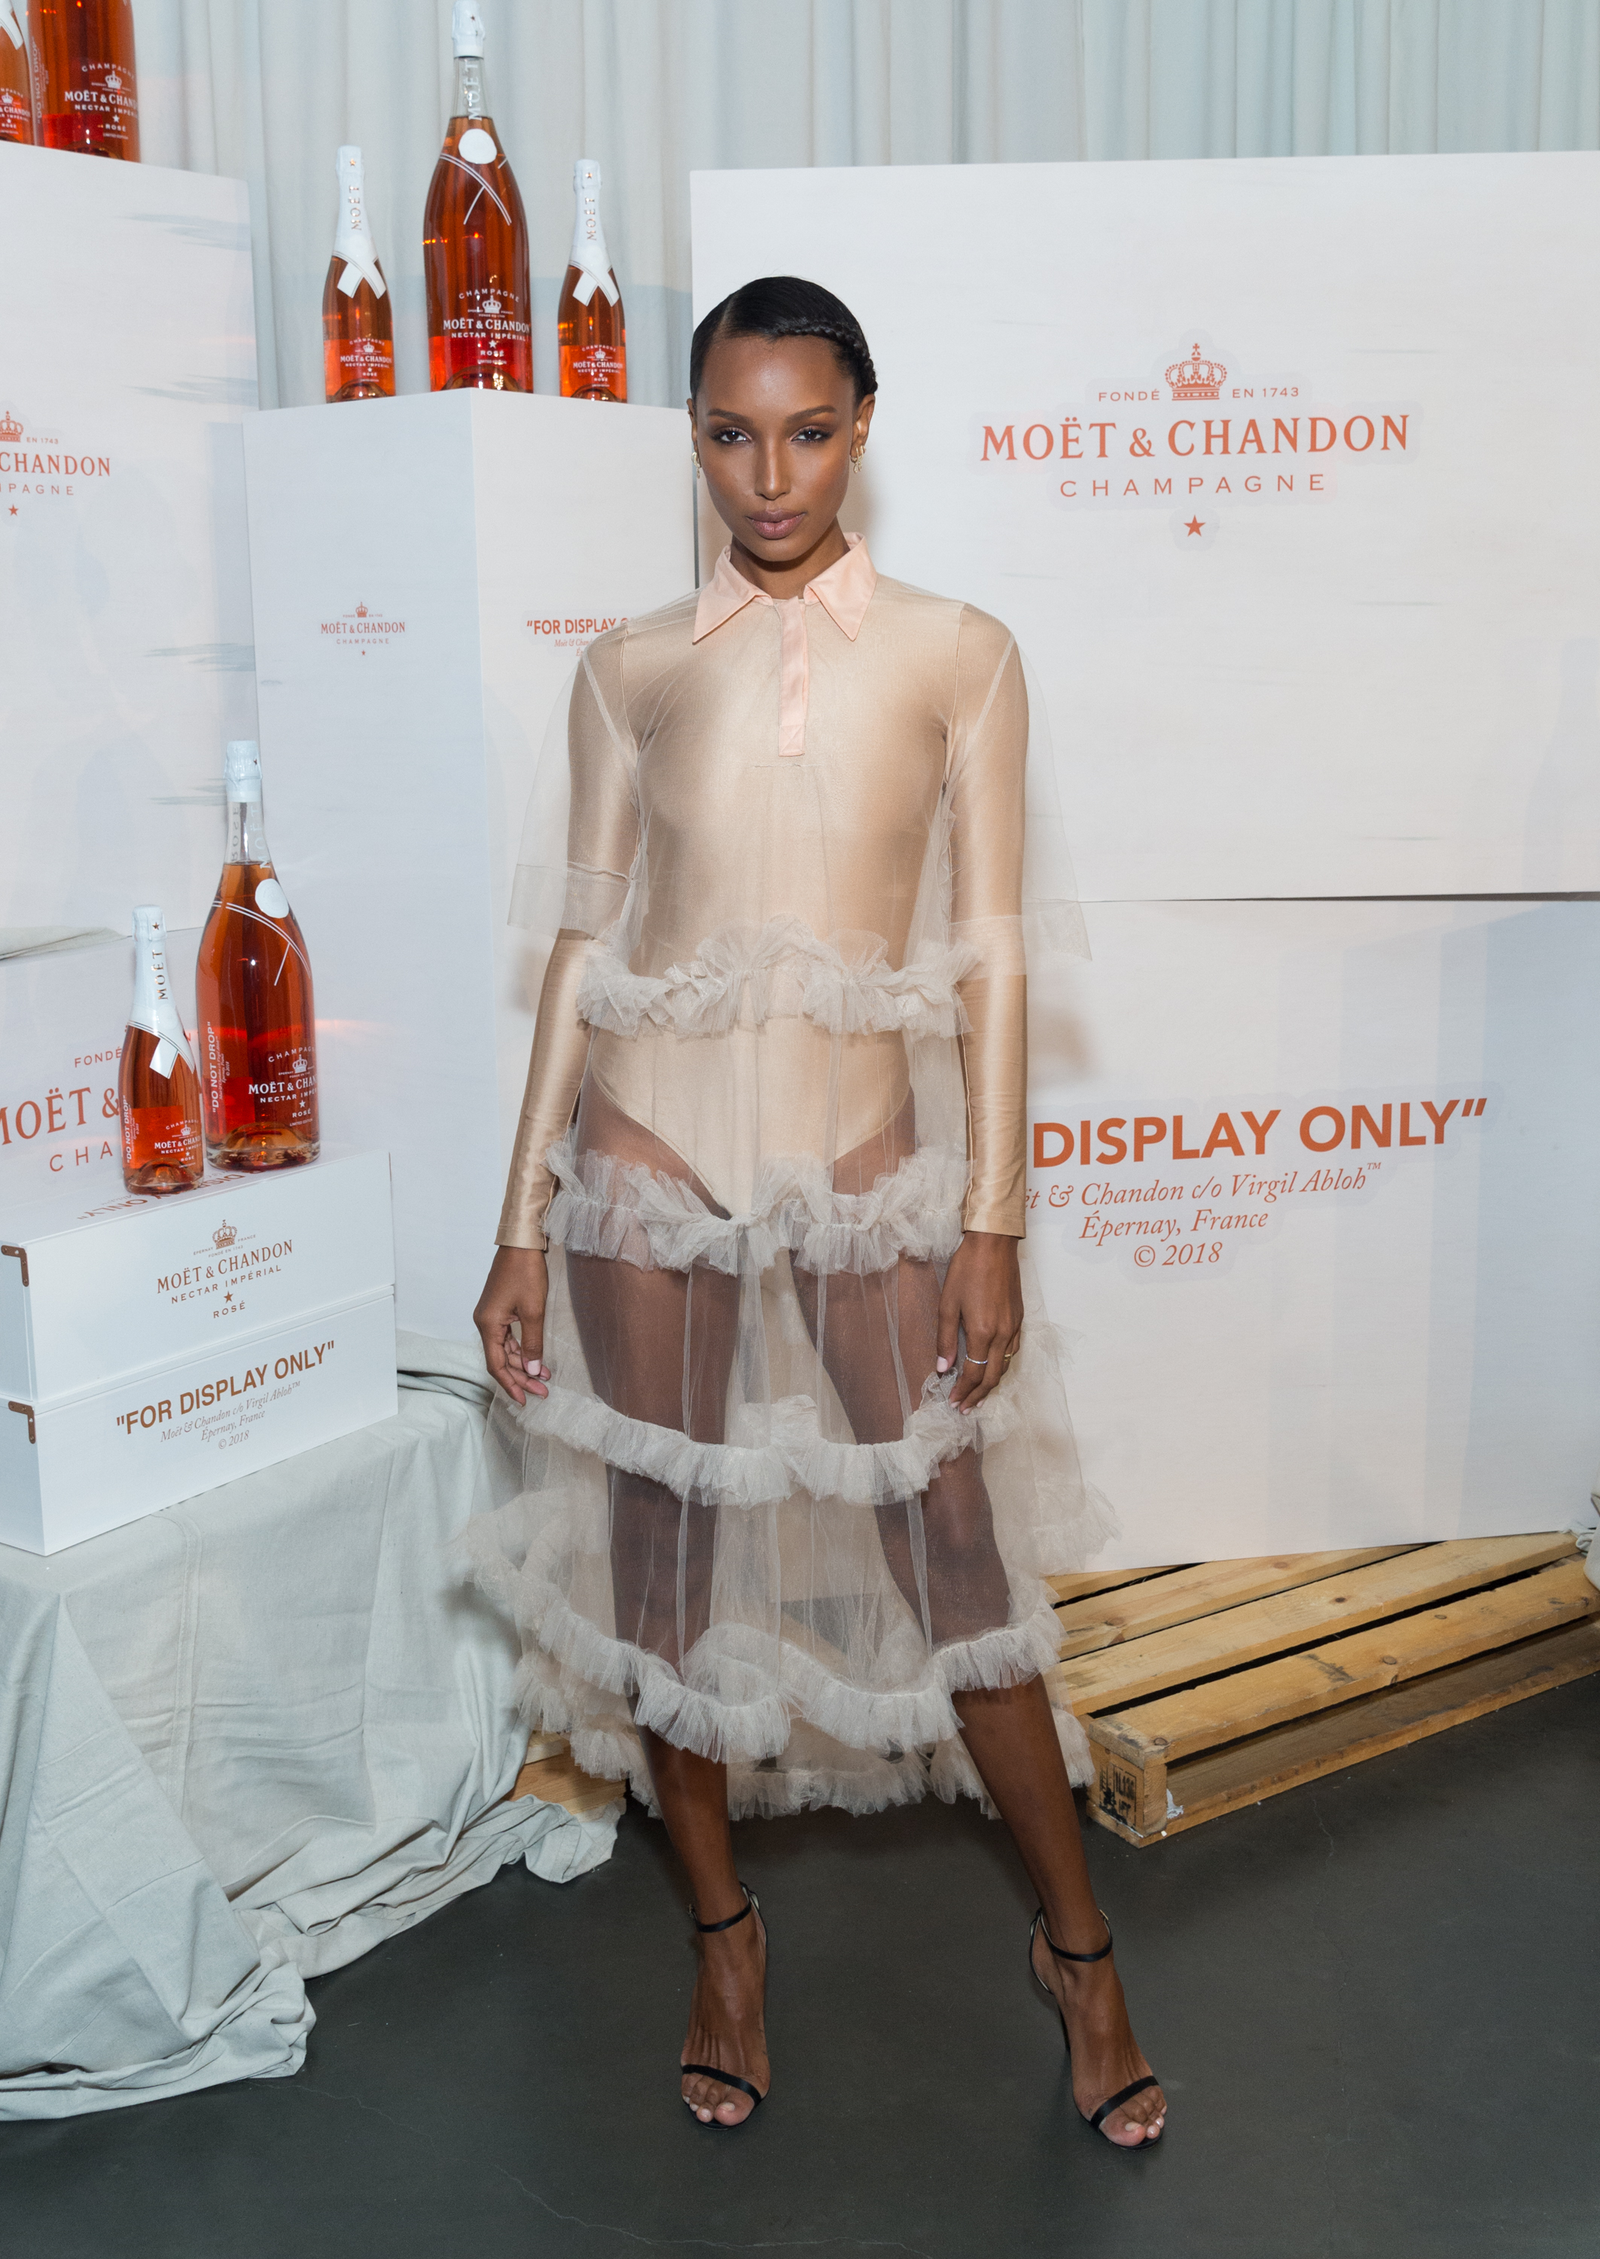 Jasmine Tookes attends Moet & Chandon and Virgil Abloh's New Bottle Collaboration Launch at The New Museum on Oct. 16, 2018 in New York City.